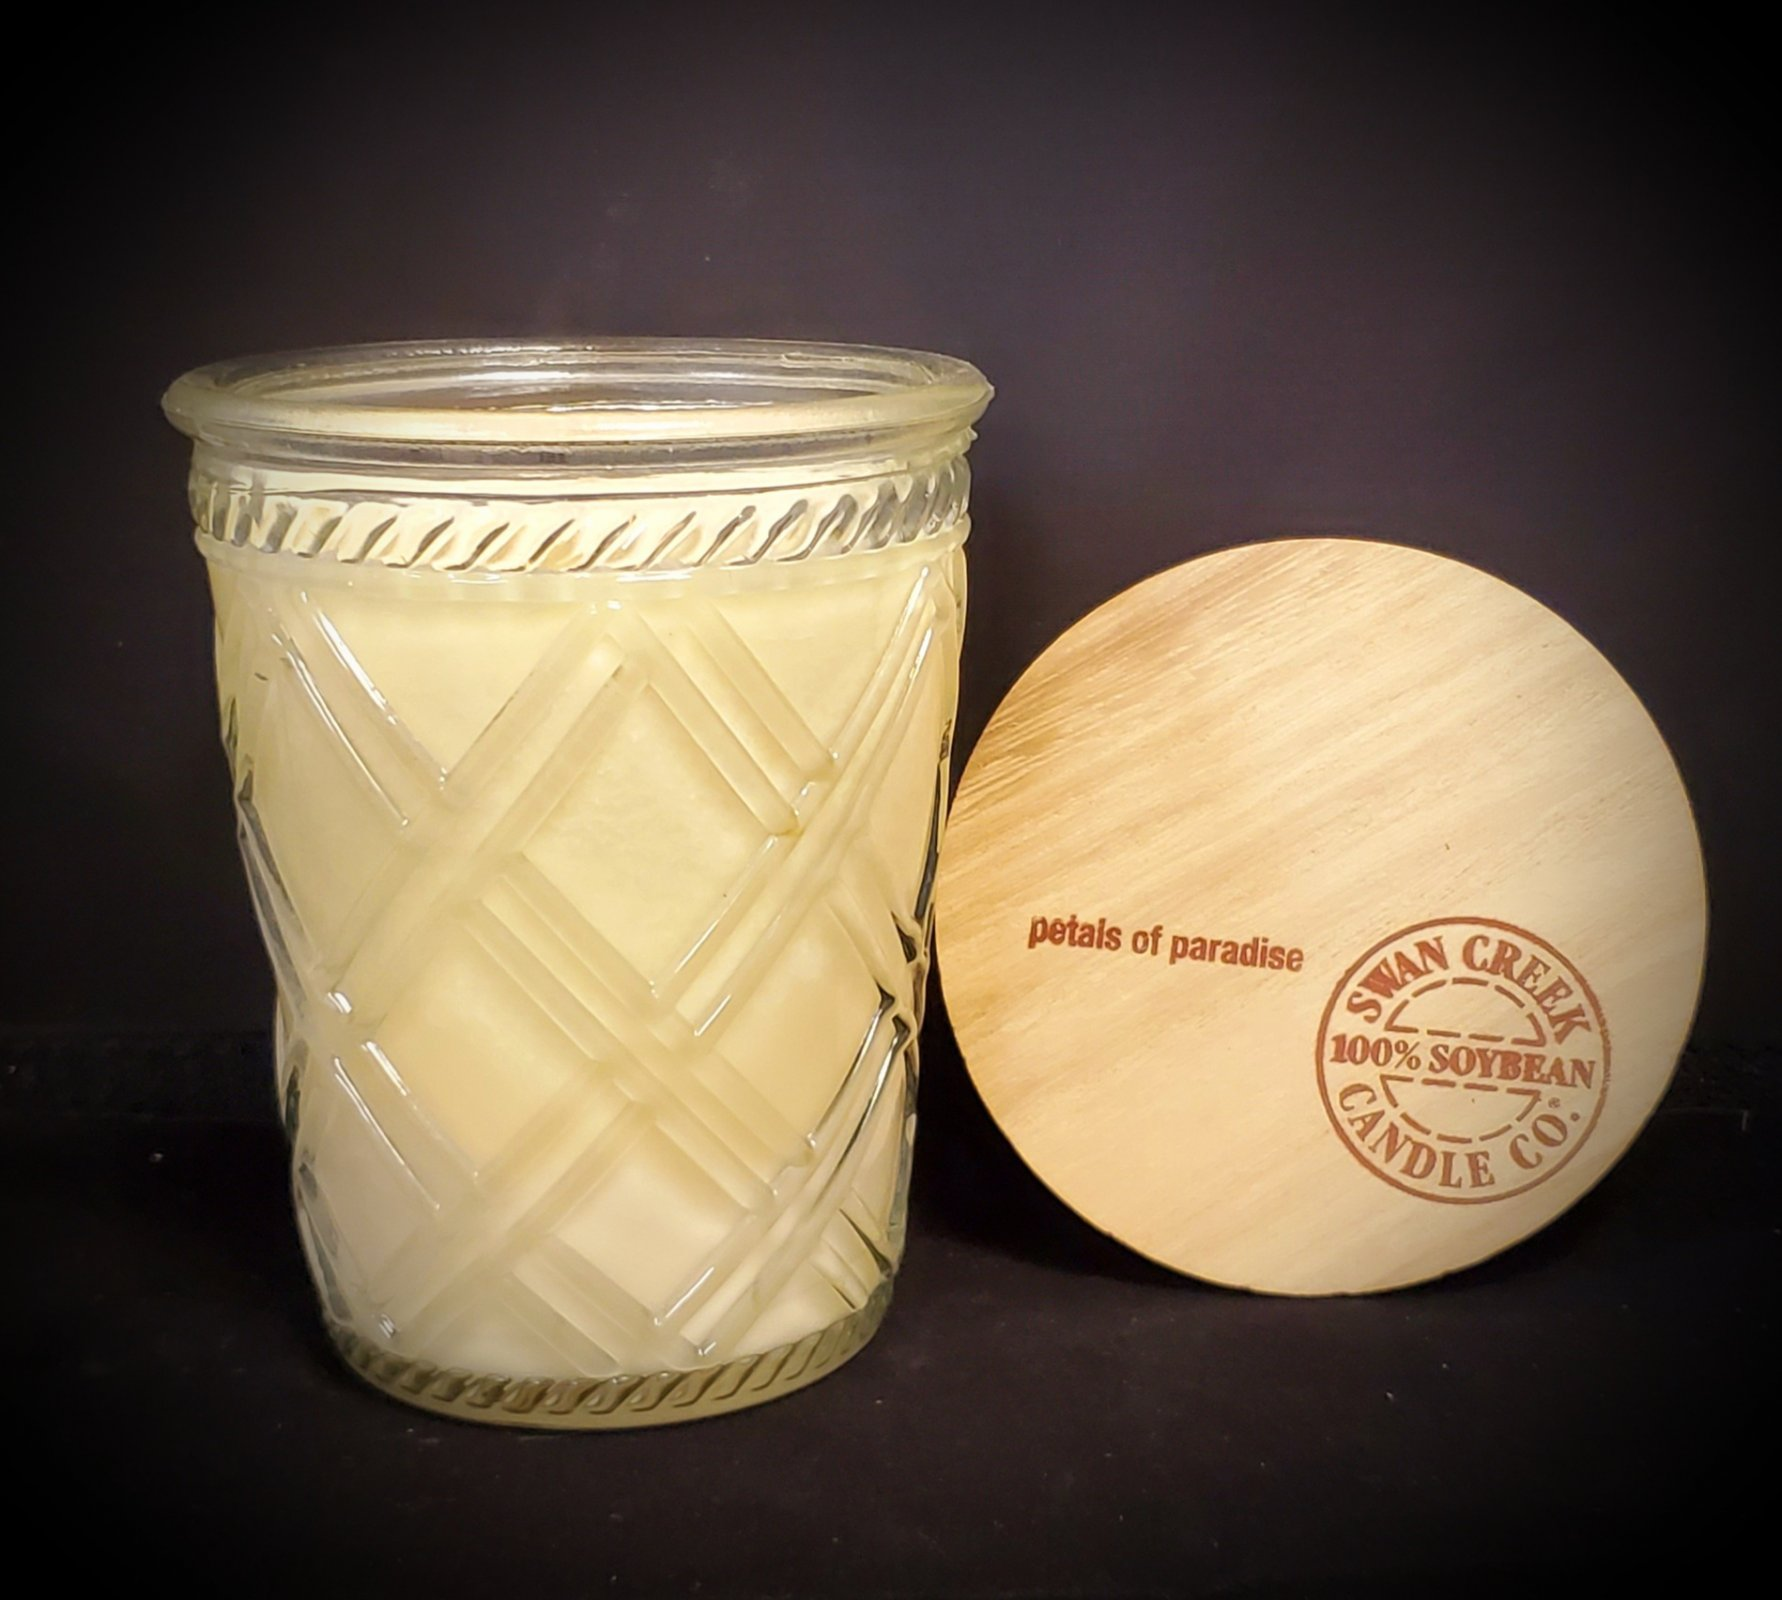 Swan Creek Candles Timeless Jar - Petals of paradise